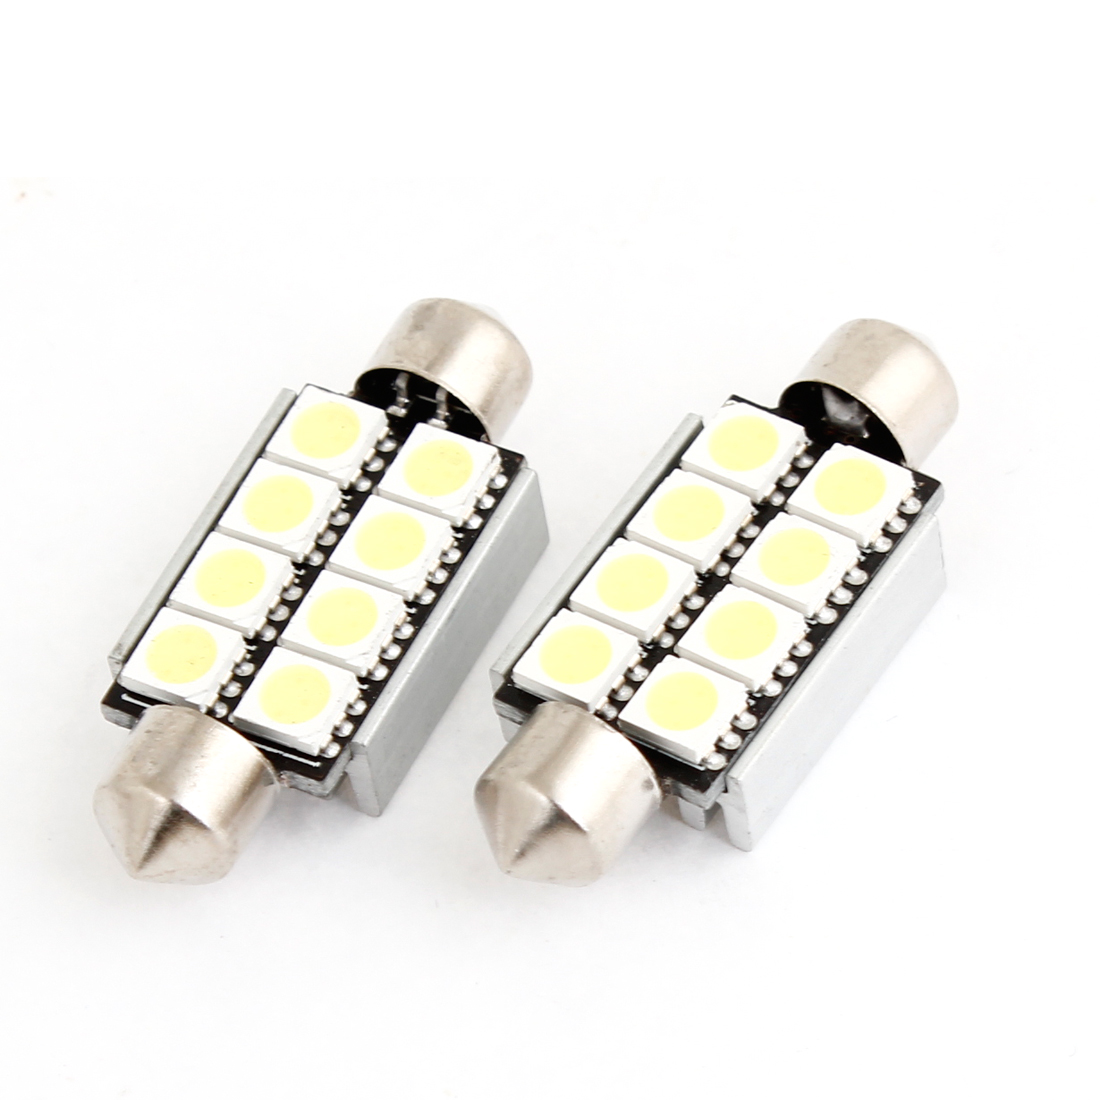 2 Pcs 42mm Canbus Error Free White 8 5050 SMD LED Festoon Dome Lights internal